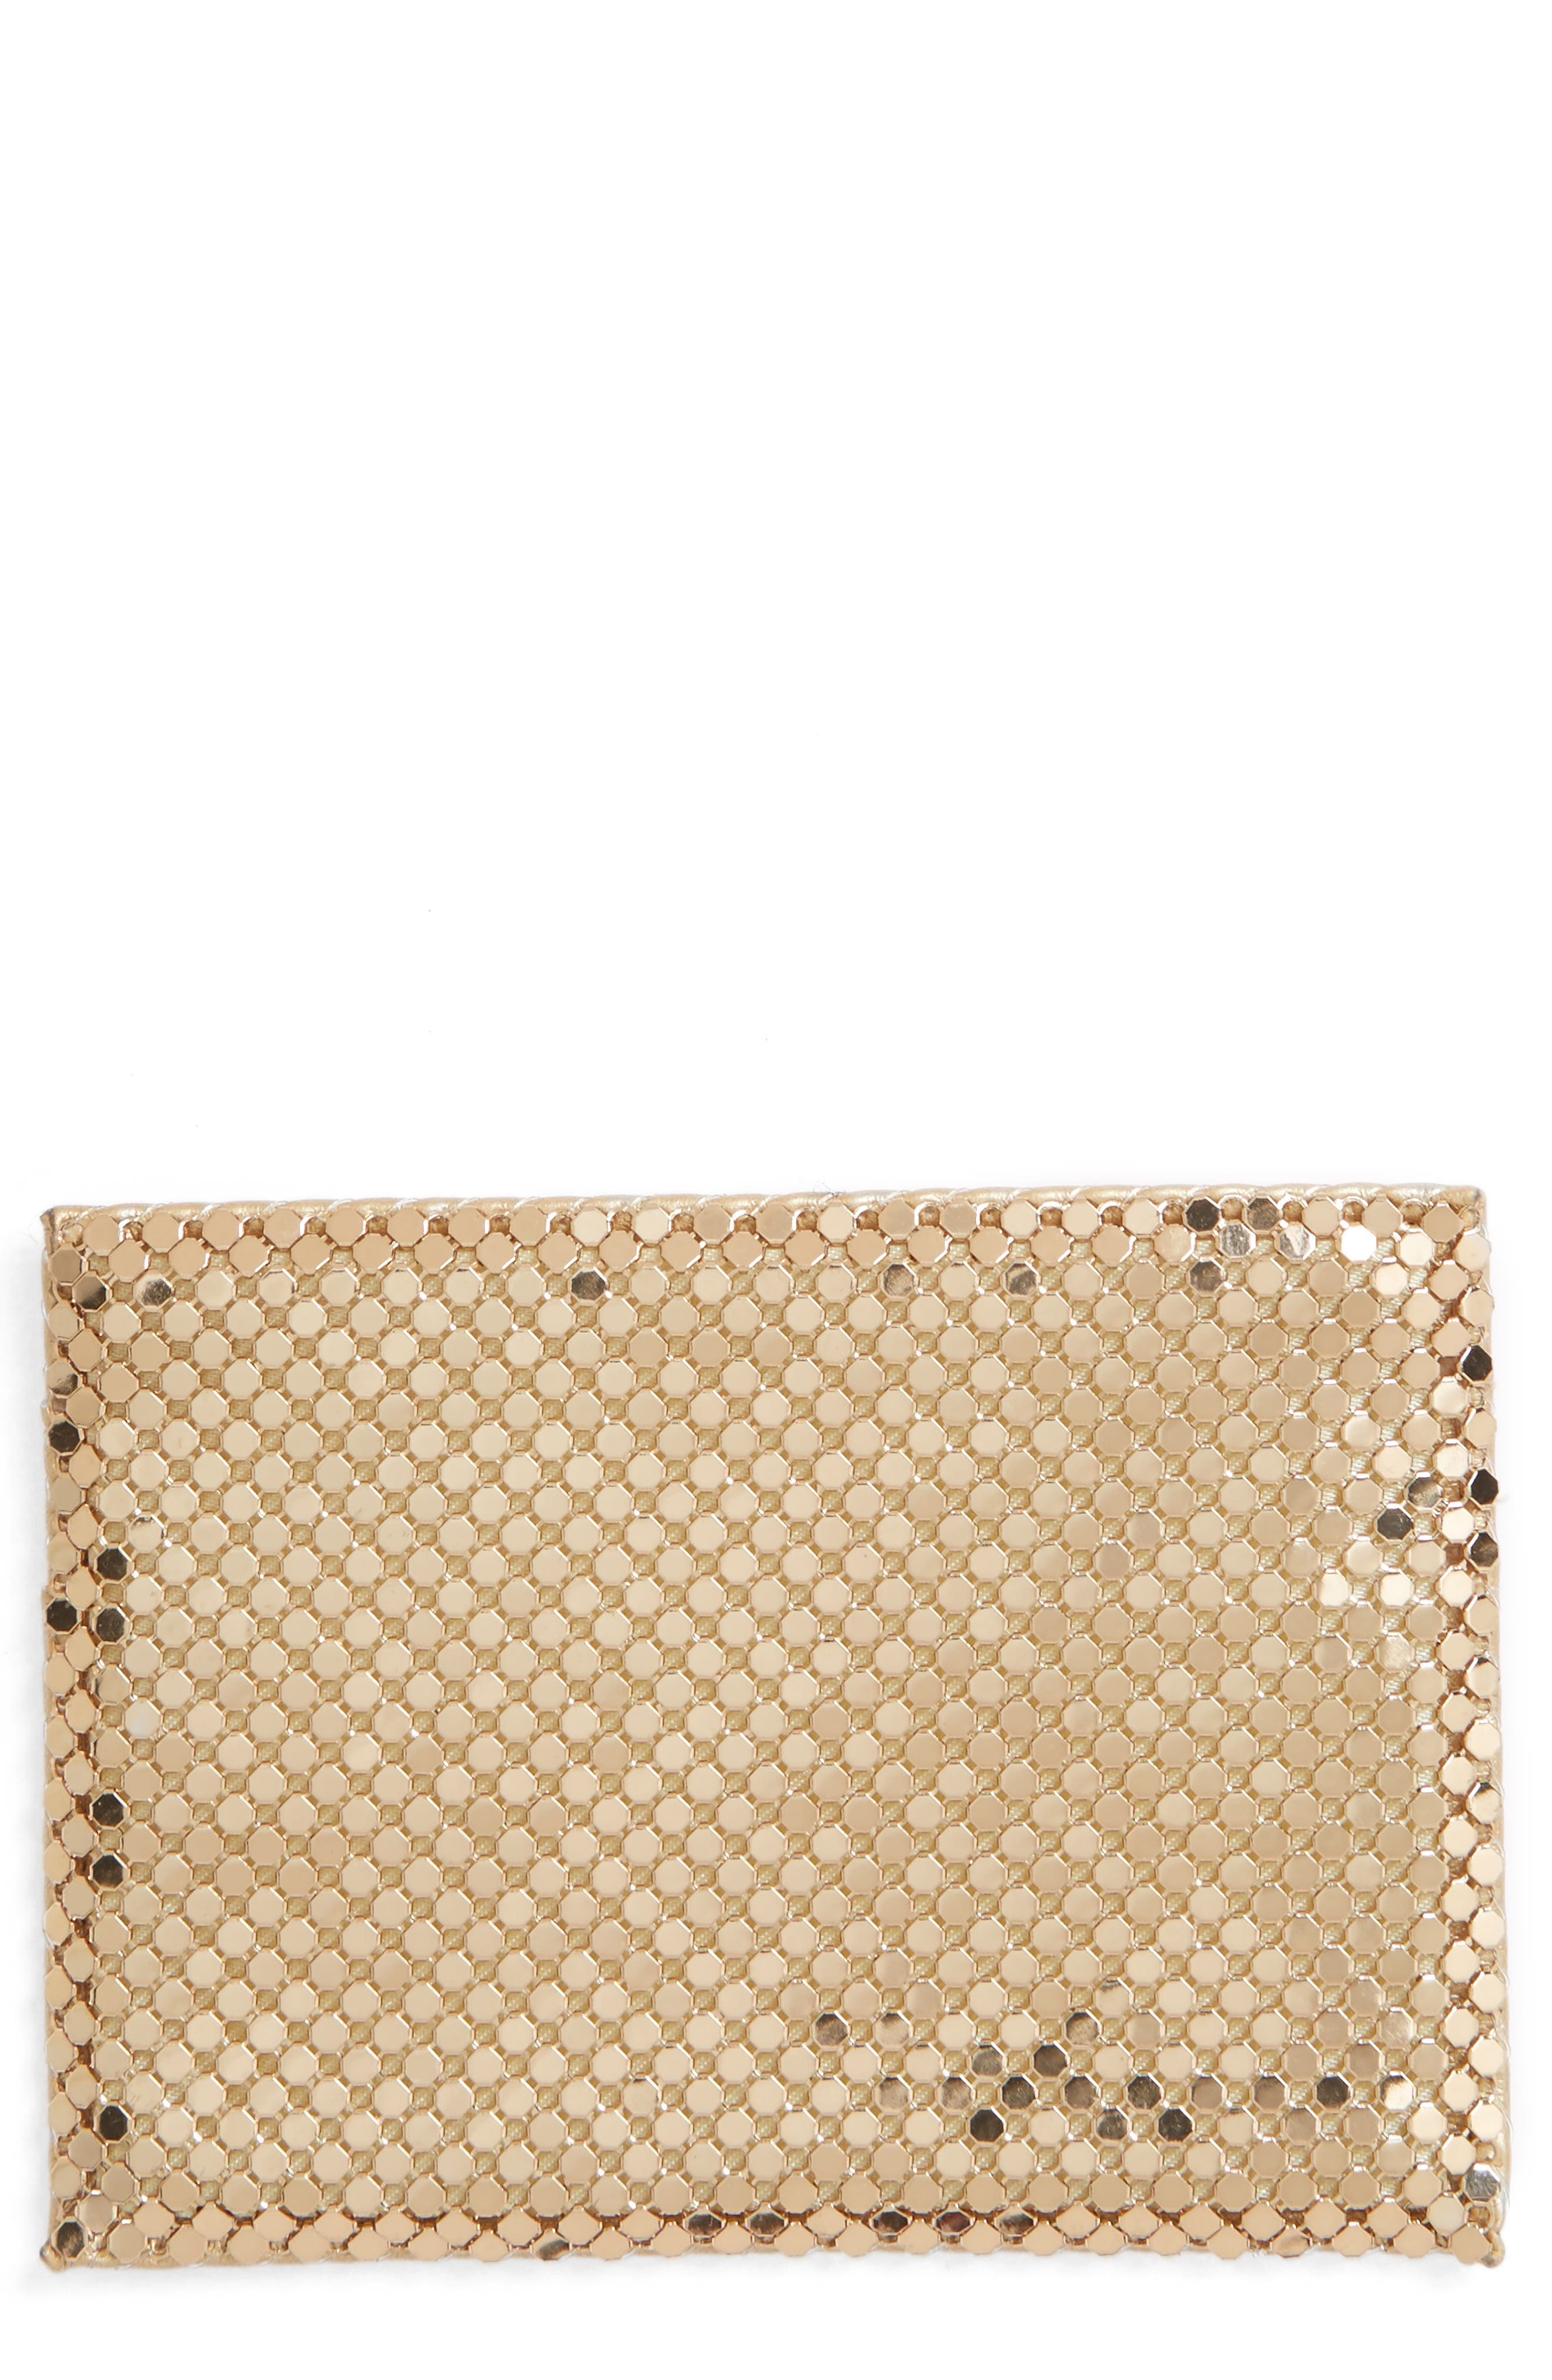 Main Image - Whiting & Davis Faux Leather & Mesh Card Case